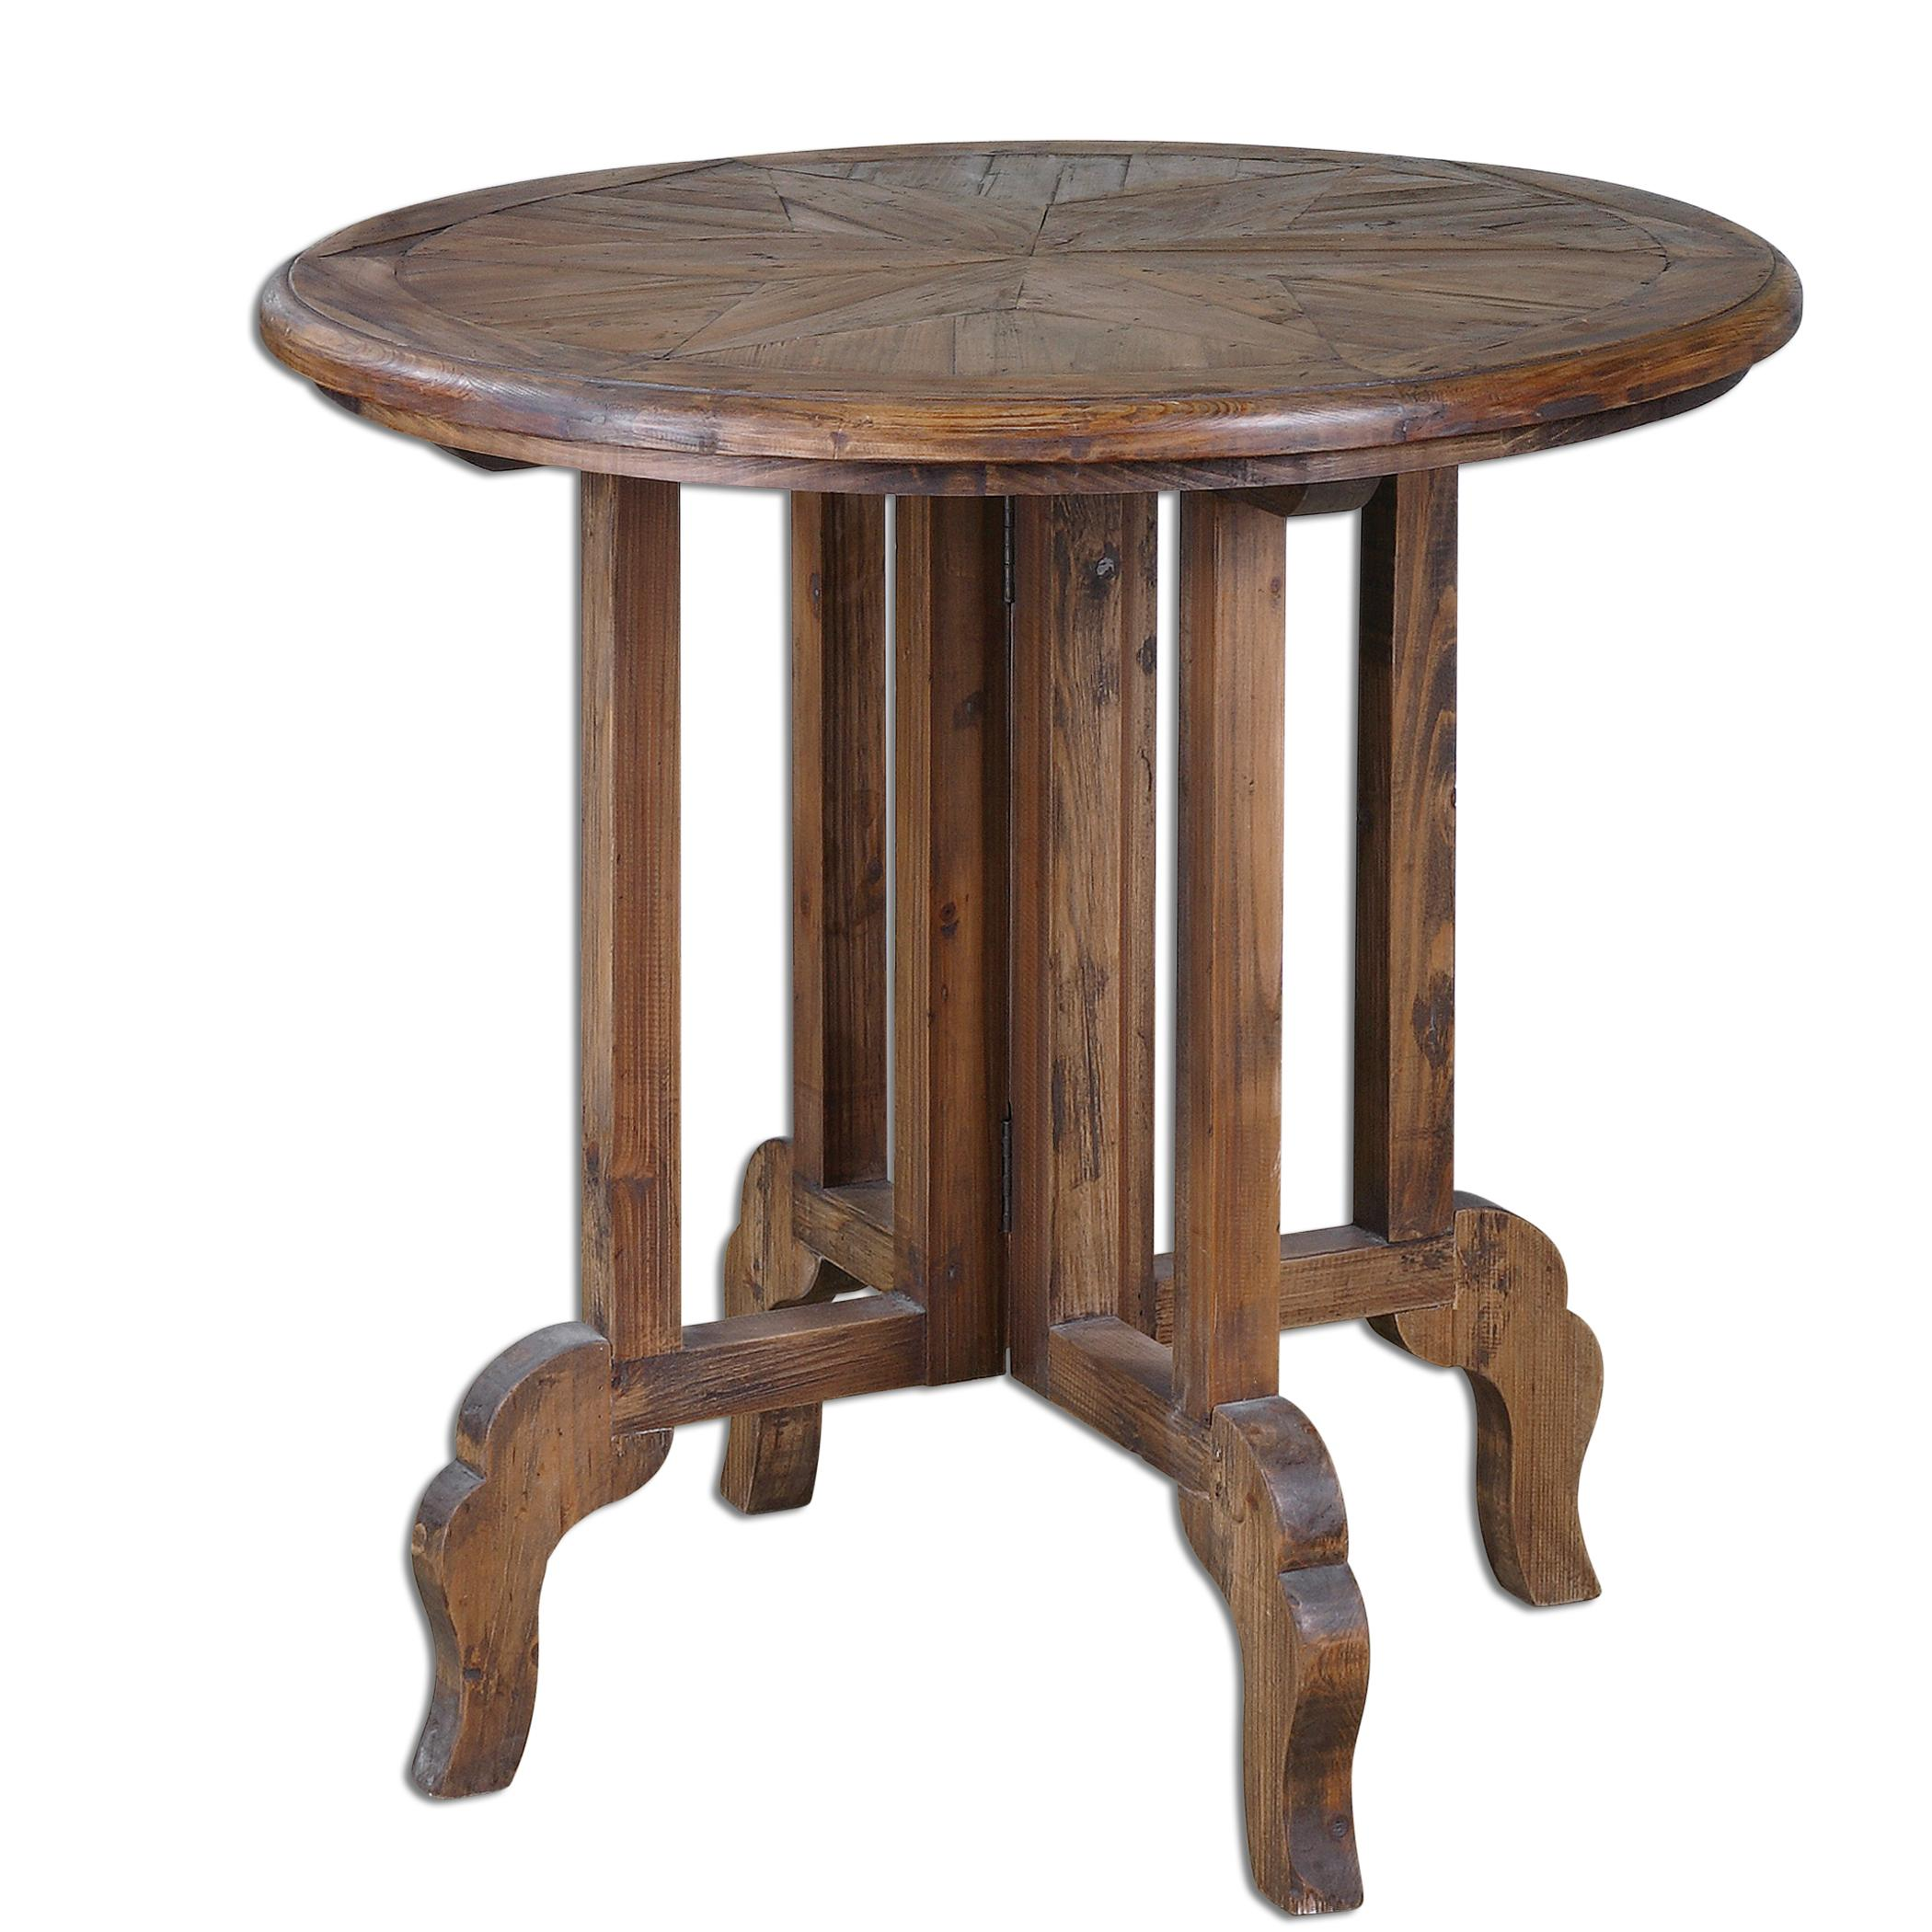 Accent Furniture - Occasional Tables Imber Round Accent Table by Uttermost at Goffena Furniture & Mattress Center